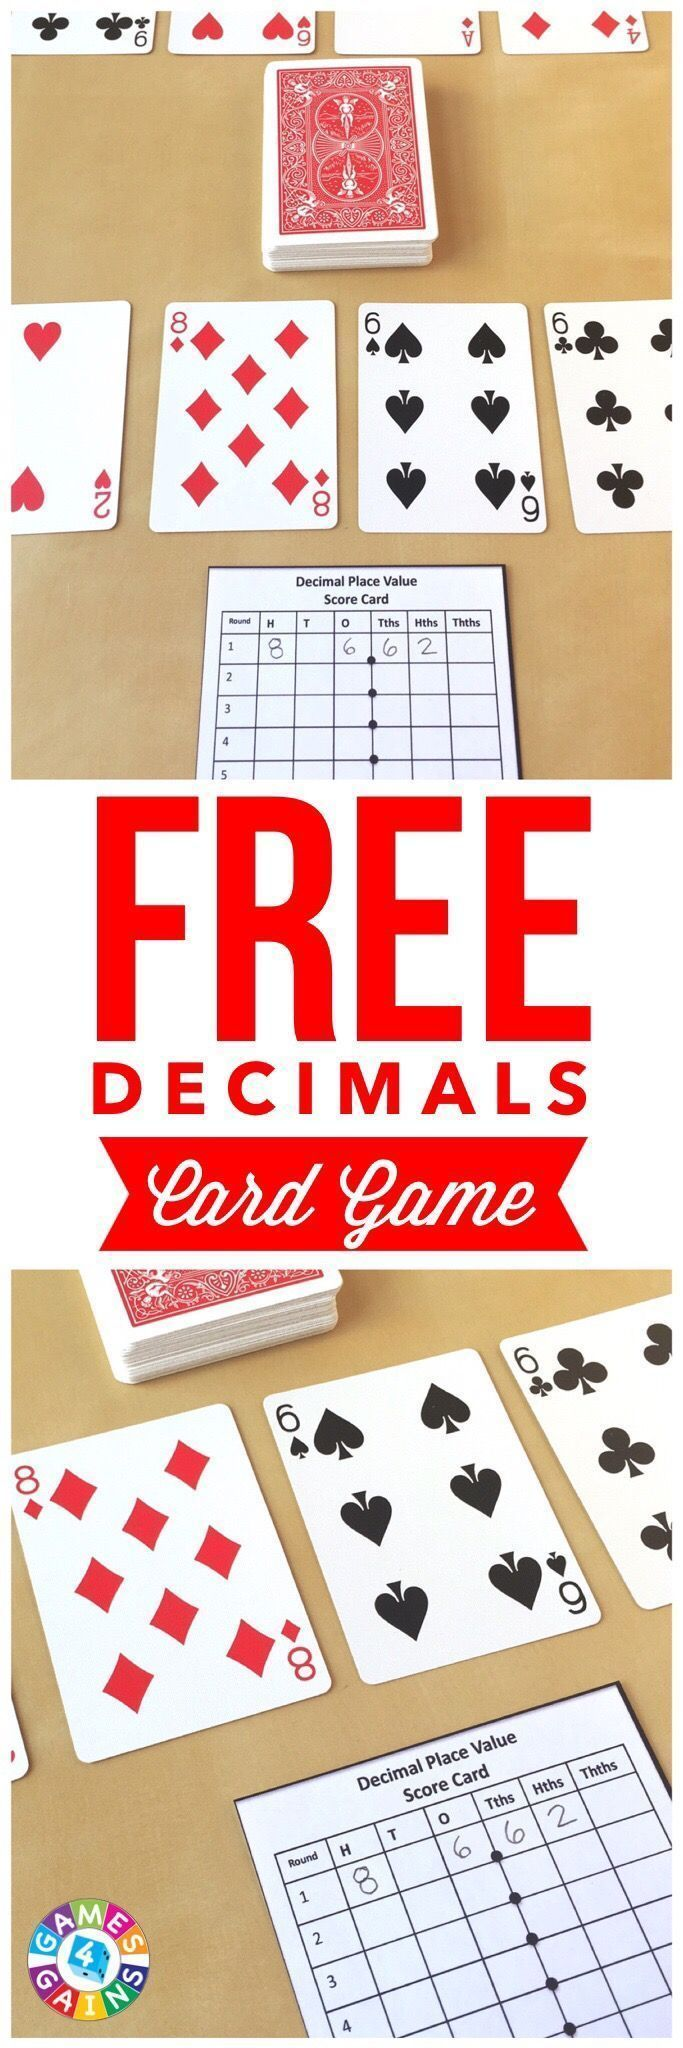 My students love this fun and easy-to-prep decimals card game!  Works great for practicing decimal place value! #teachingkidsmath